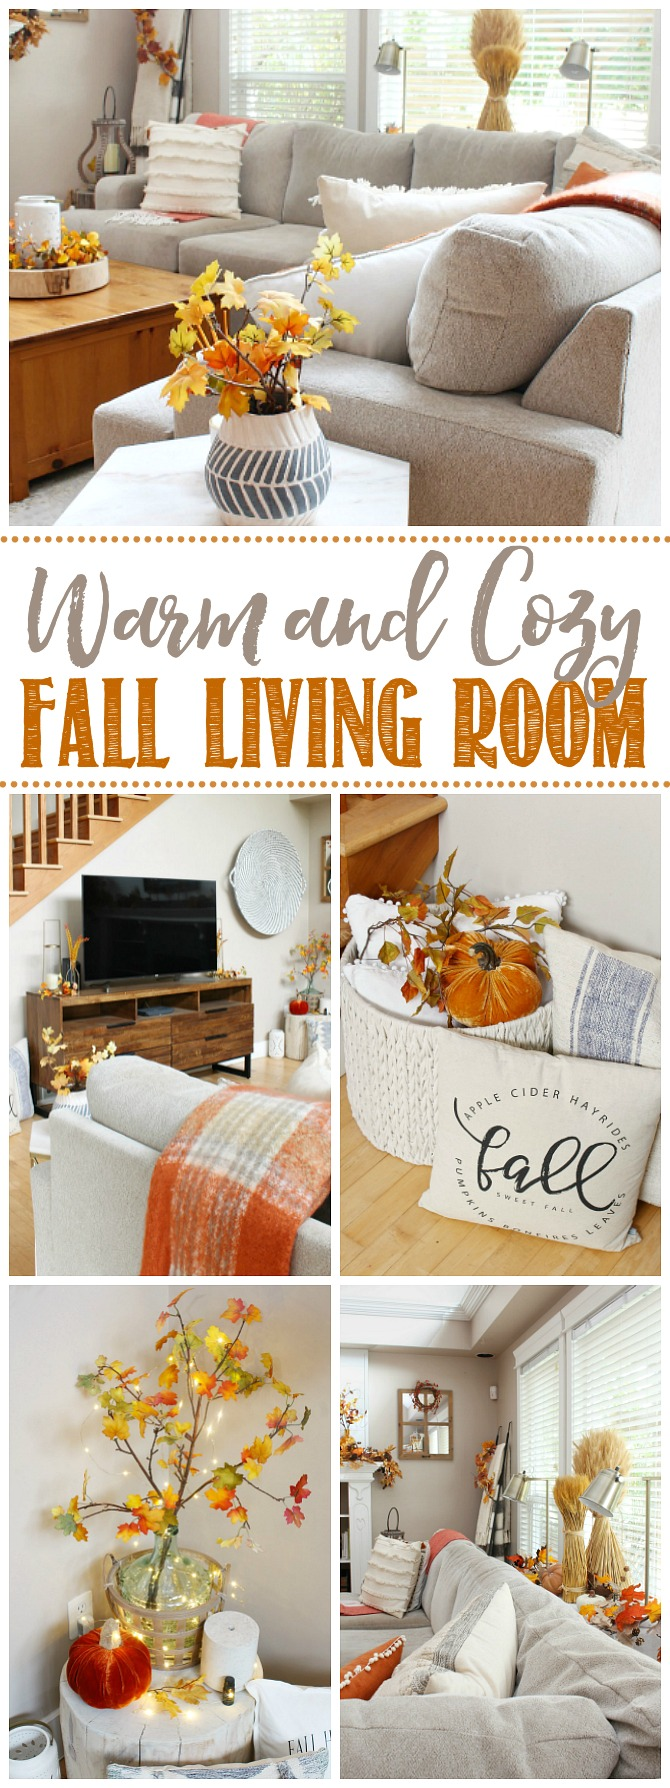 Collage of beautiful cozy fall living room decor ideas.